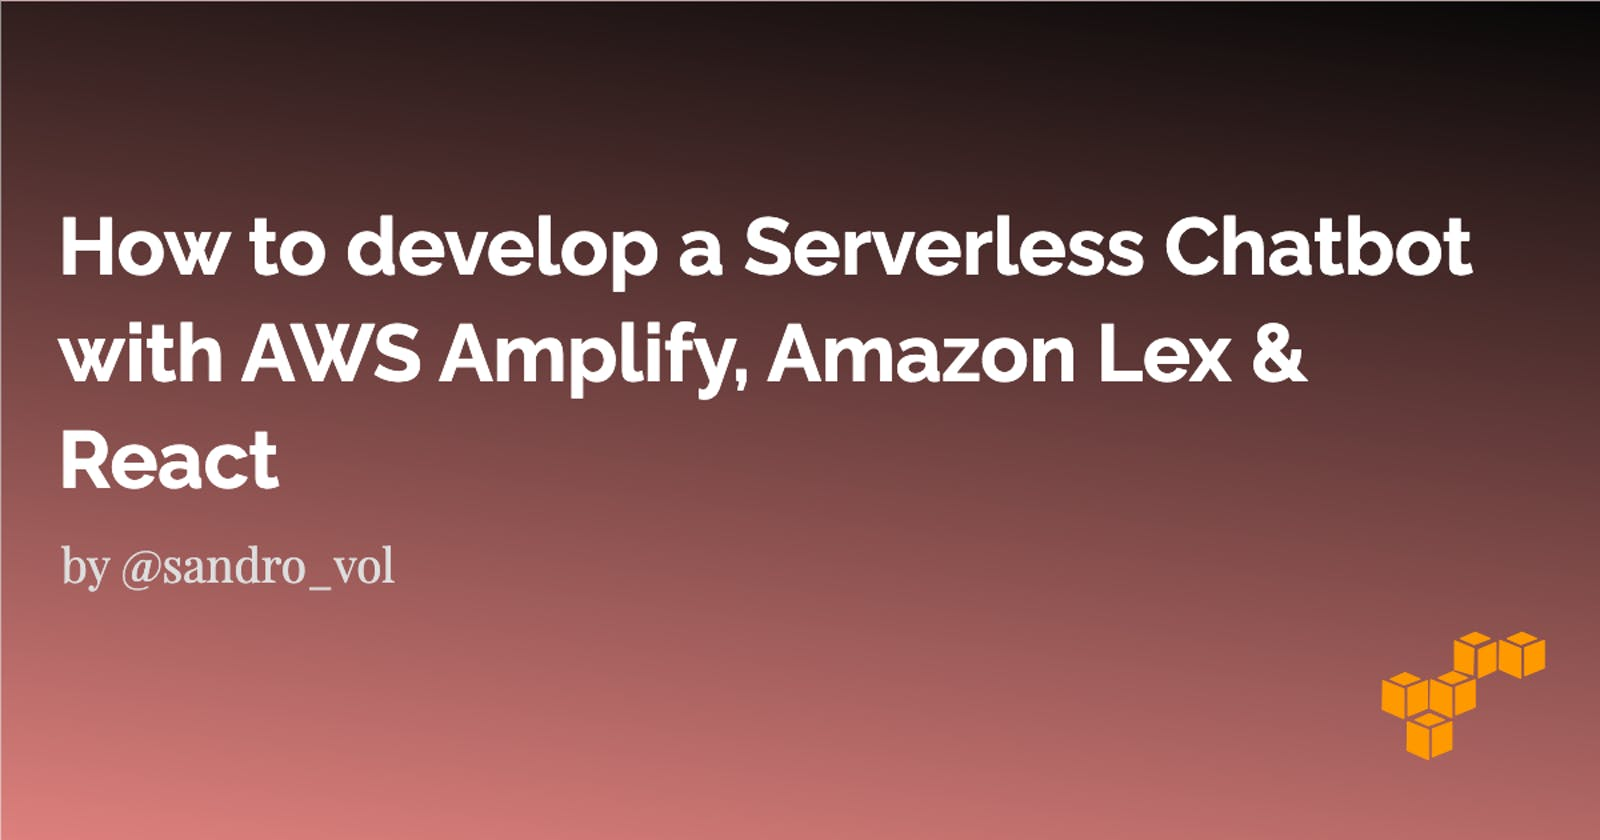 How to develop a Serverless Chatbot with AWS Amplify, Amazon Lex & React